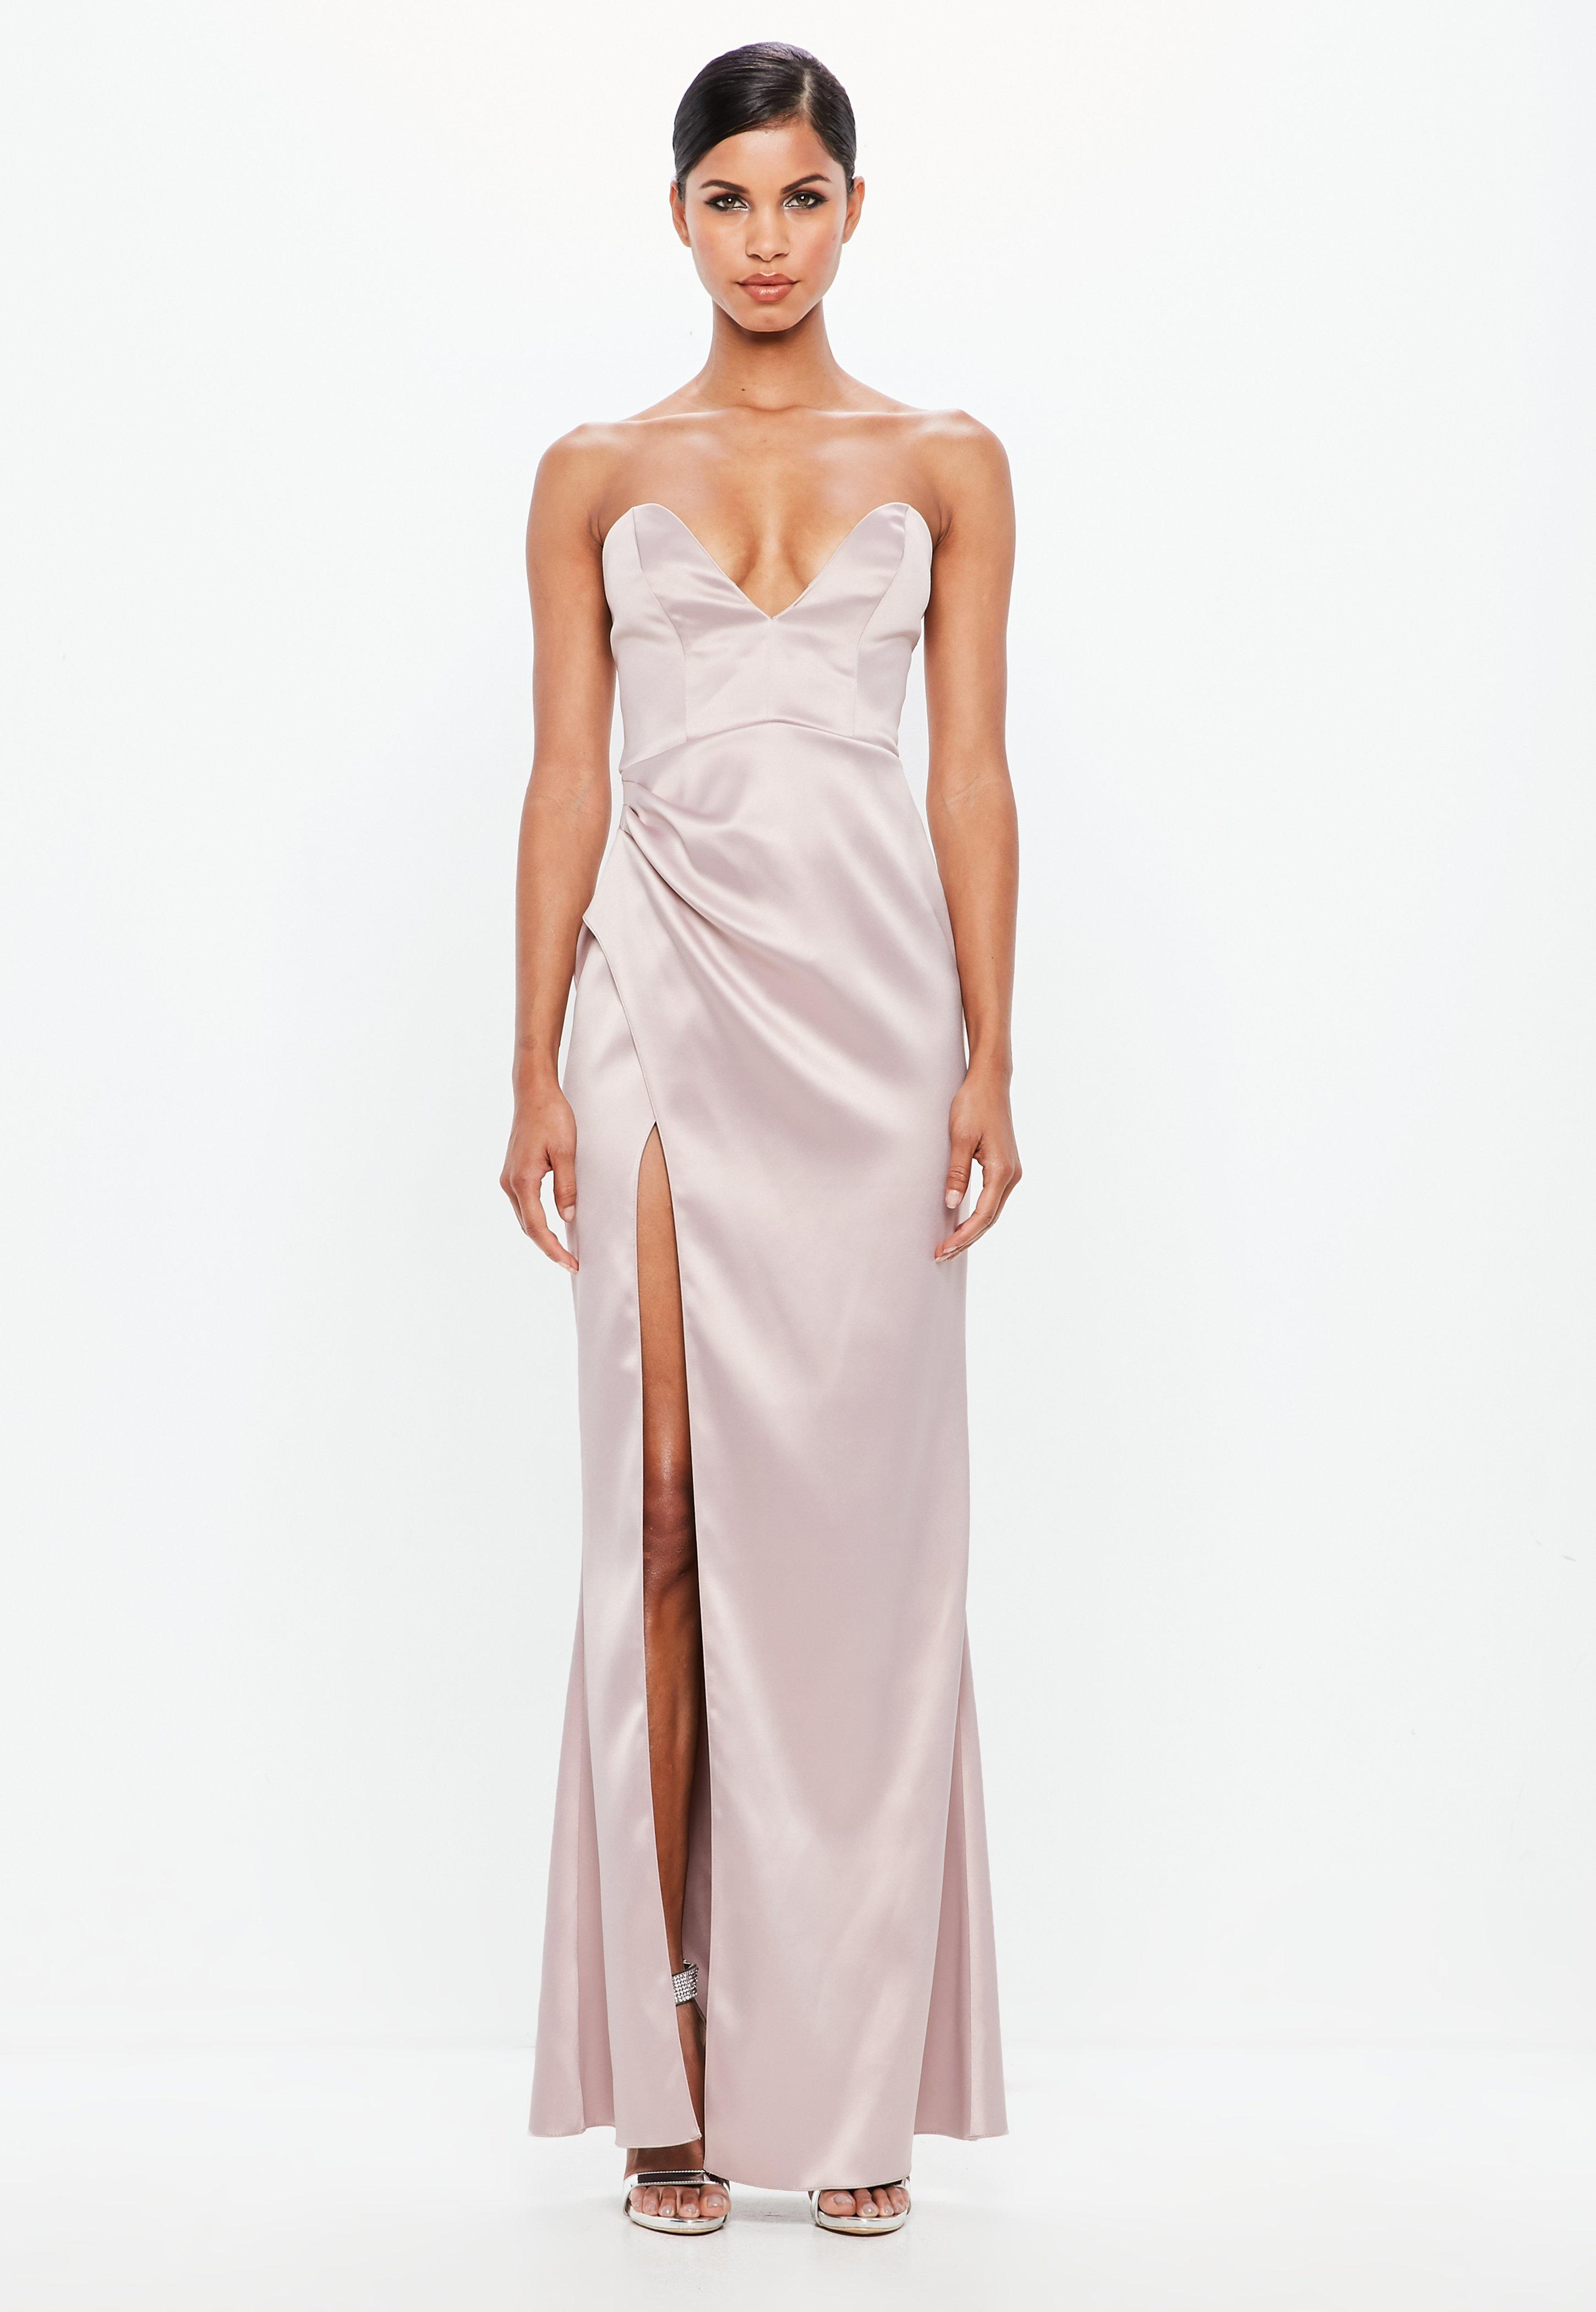 Waiste Dresses in a Tapered Line